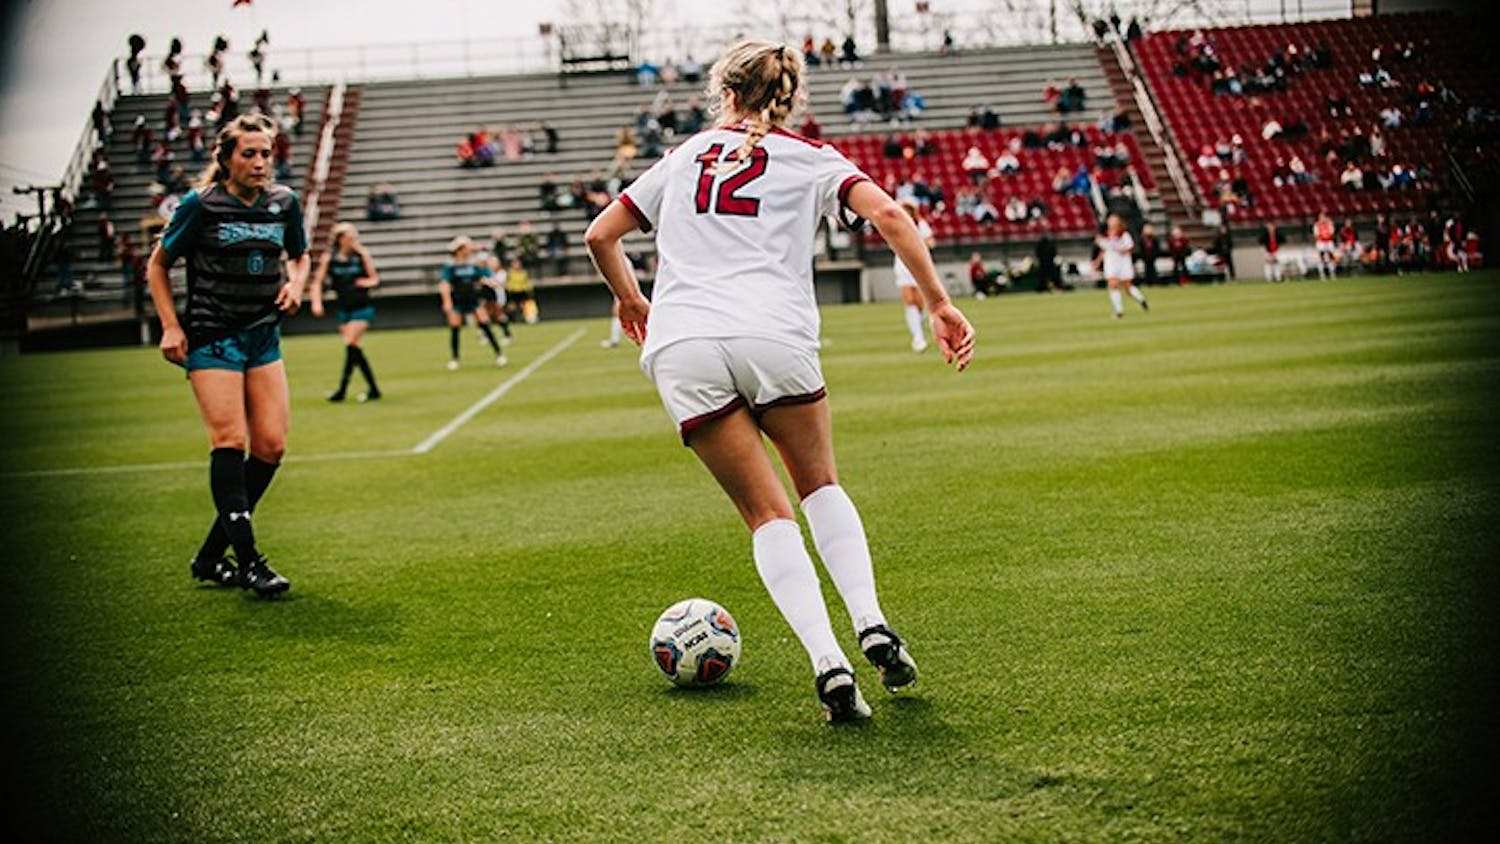 Junior defender Sutton Jones looks to dribble past a Coastal Carolina defender. The Gamecocks beat the Chanticleers 3-0 to remain undefeated at home this season.